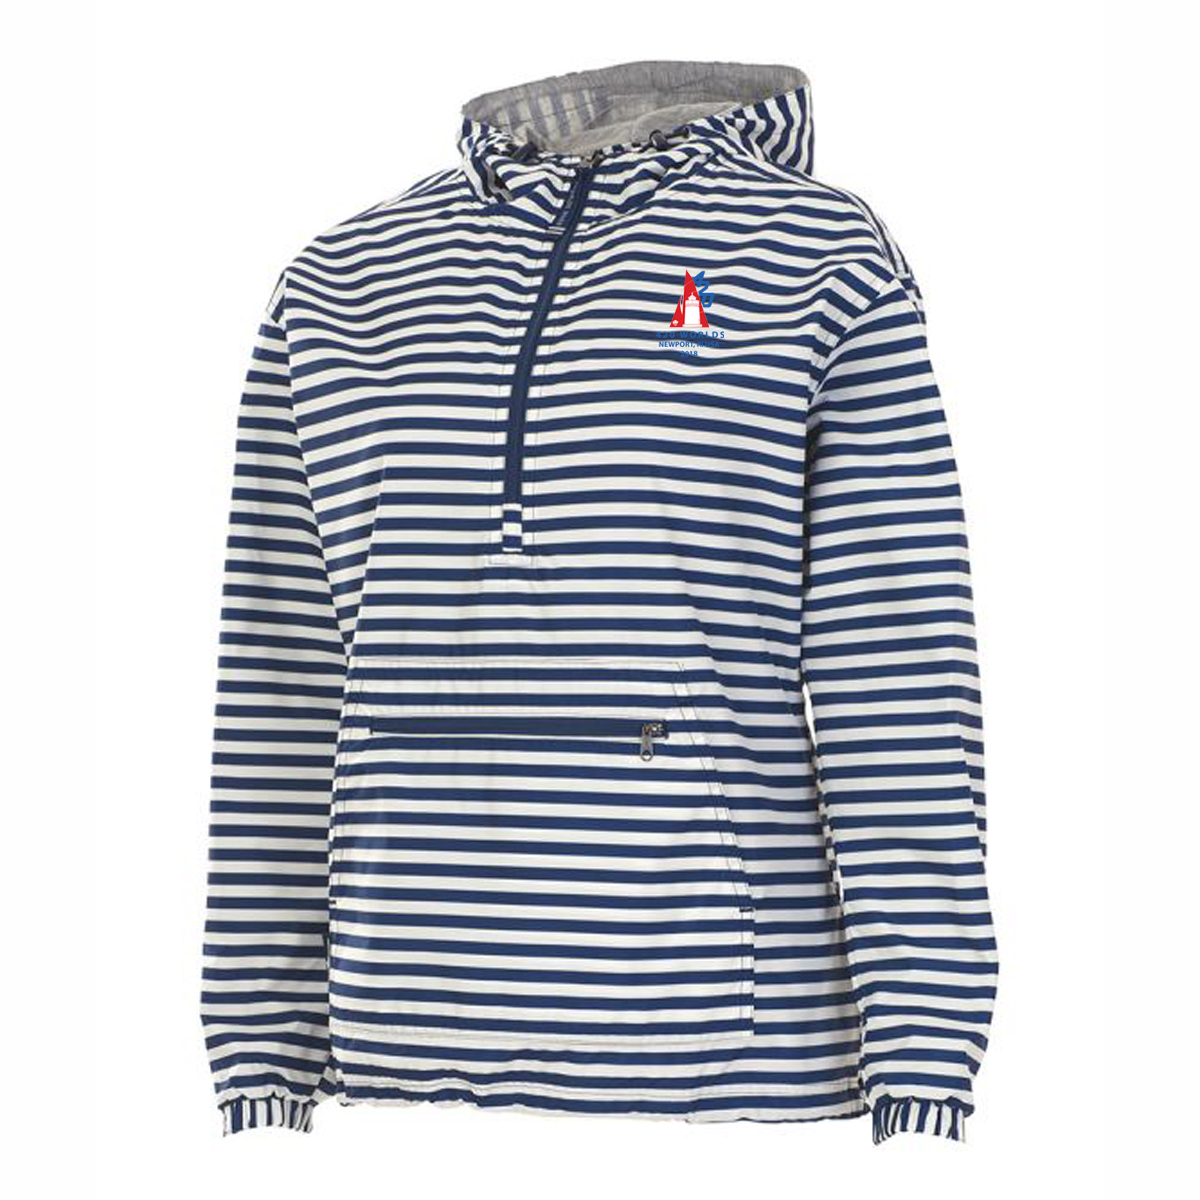 420 WORLDS - W'S STRIPED  PULLOVER